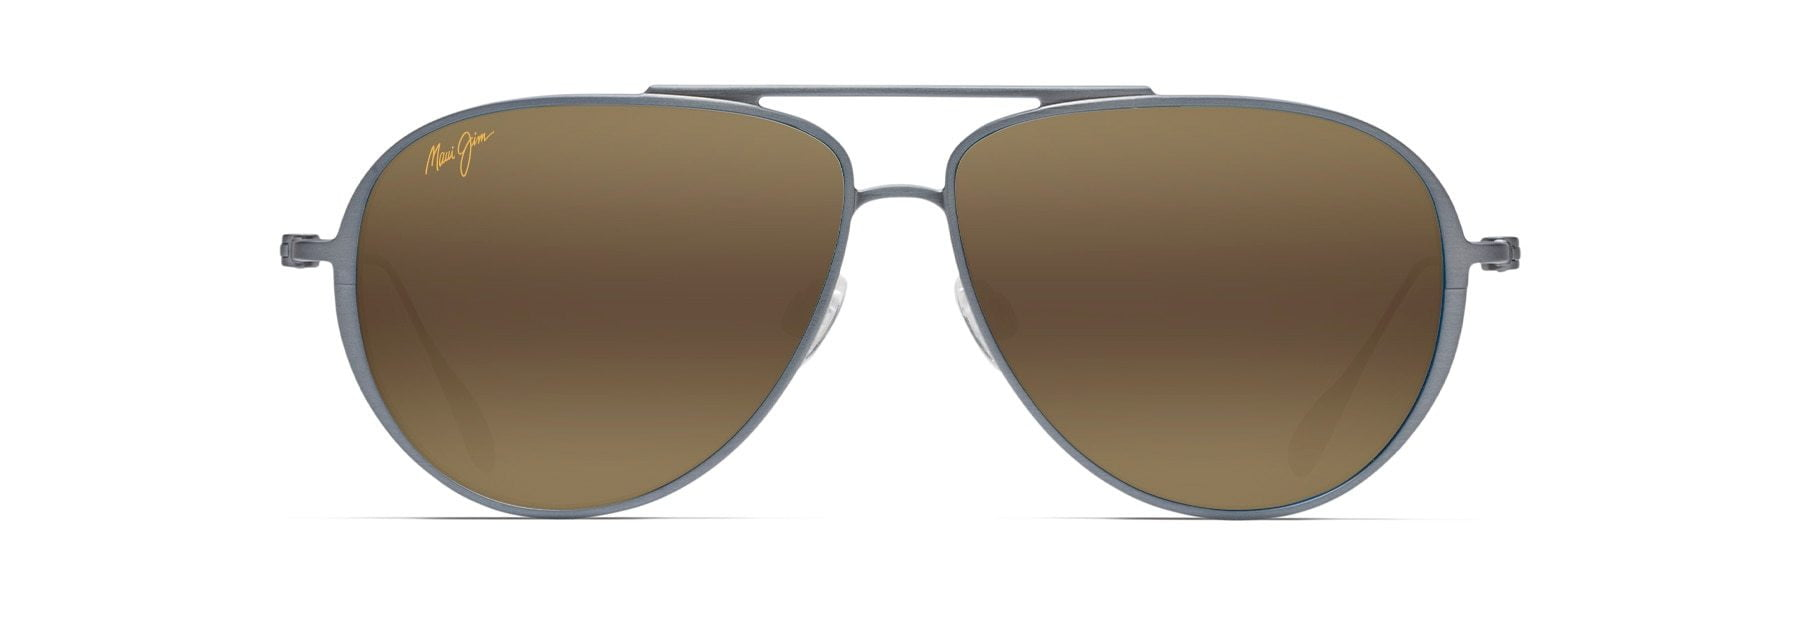 MyMaui Maui Jim Shallows Sunglasses